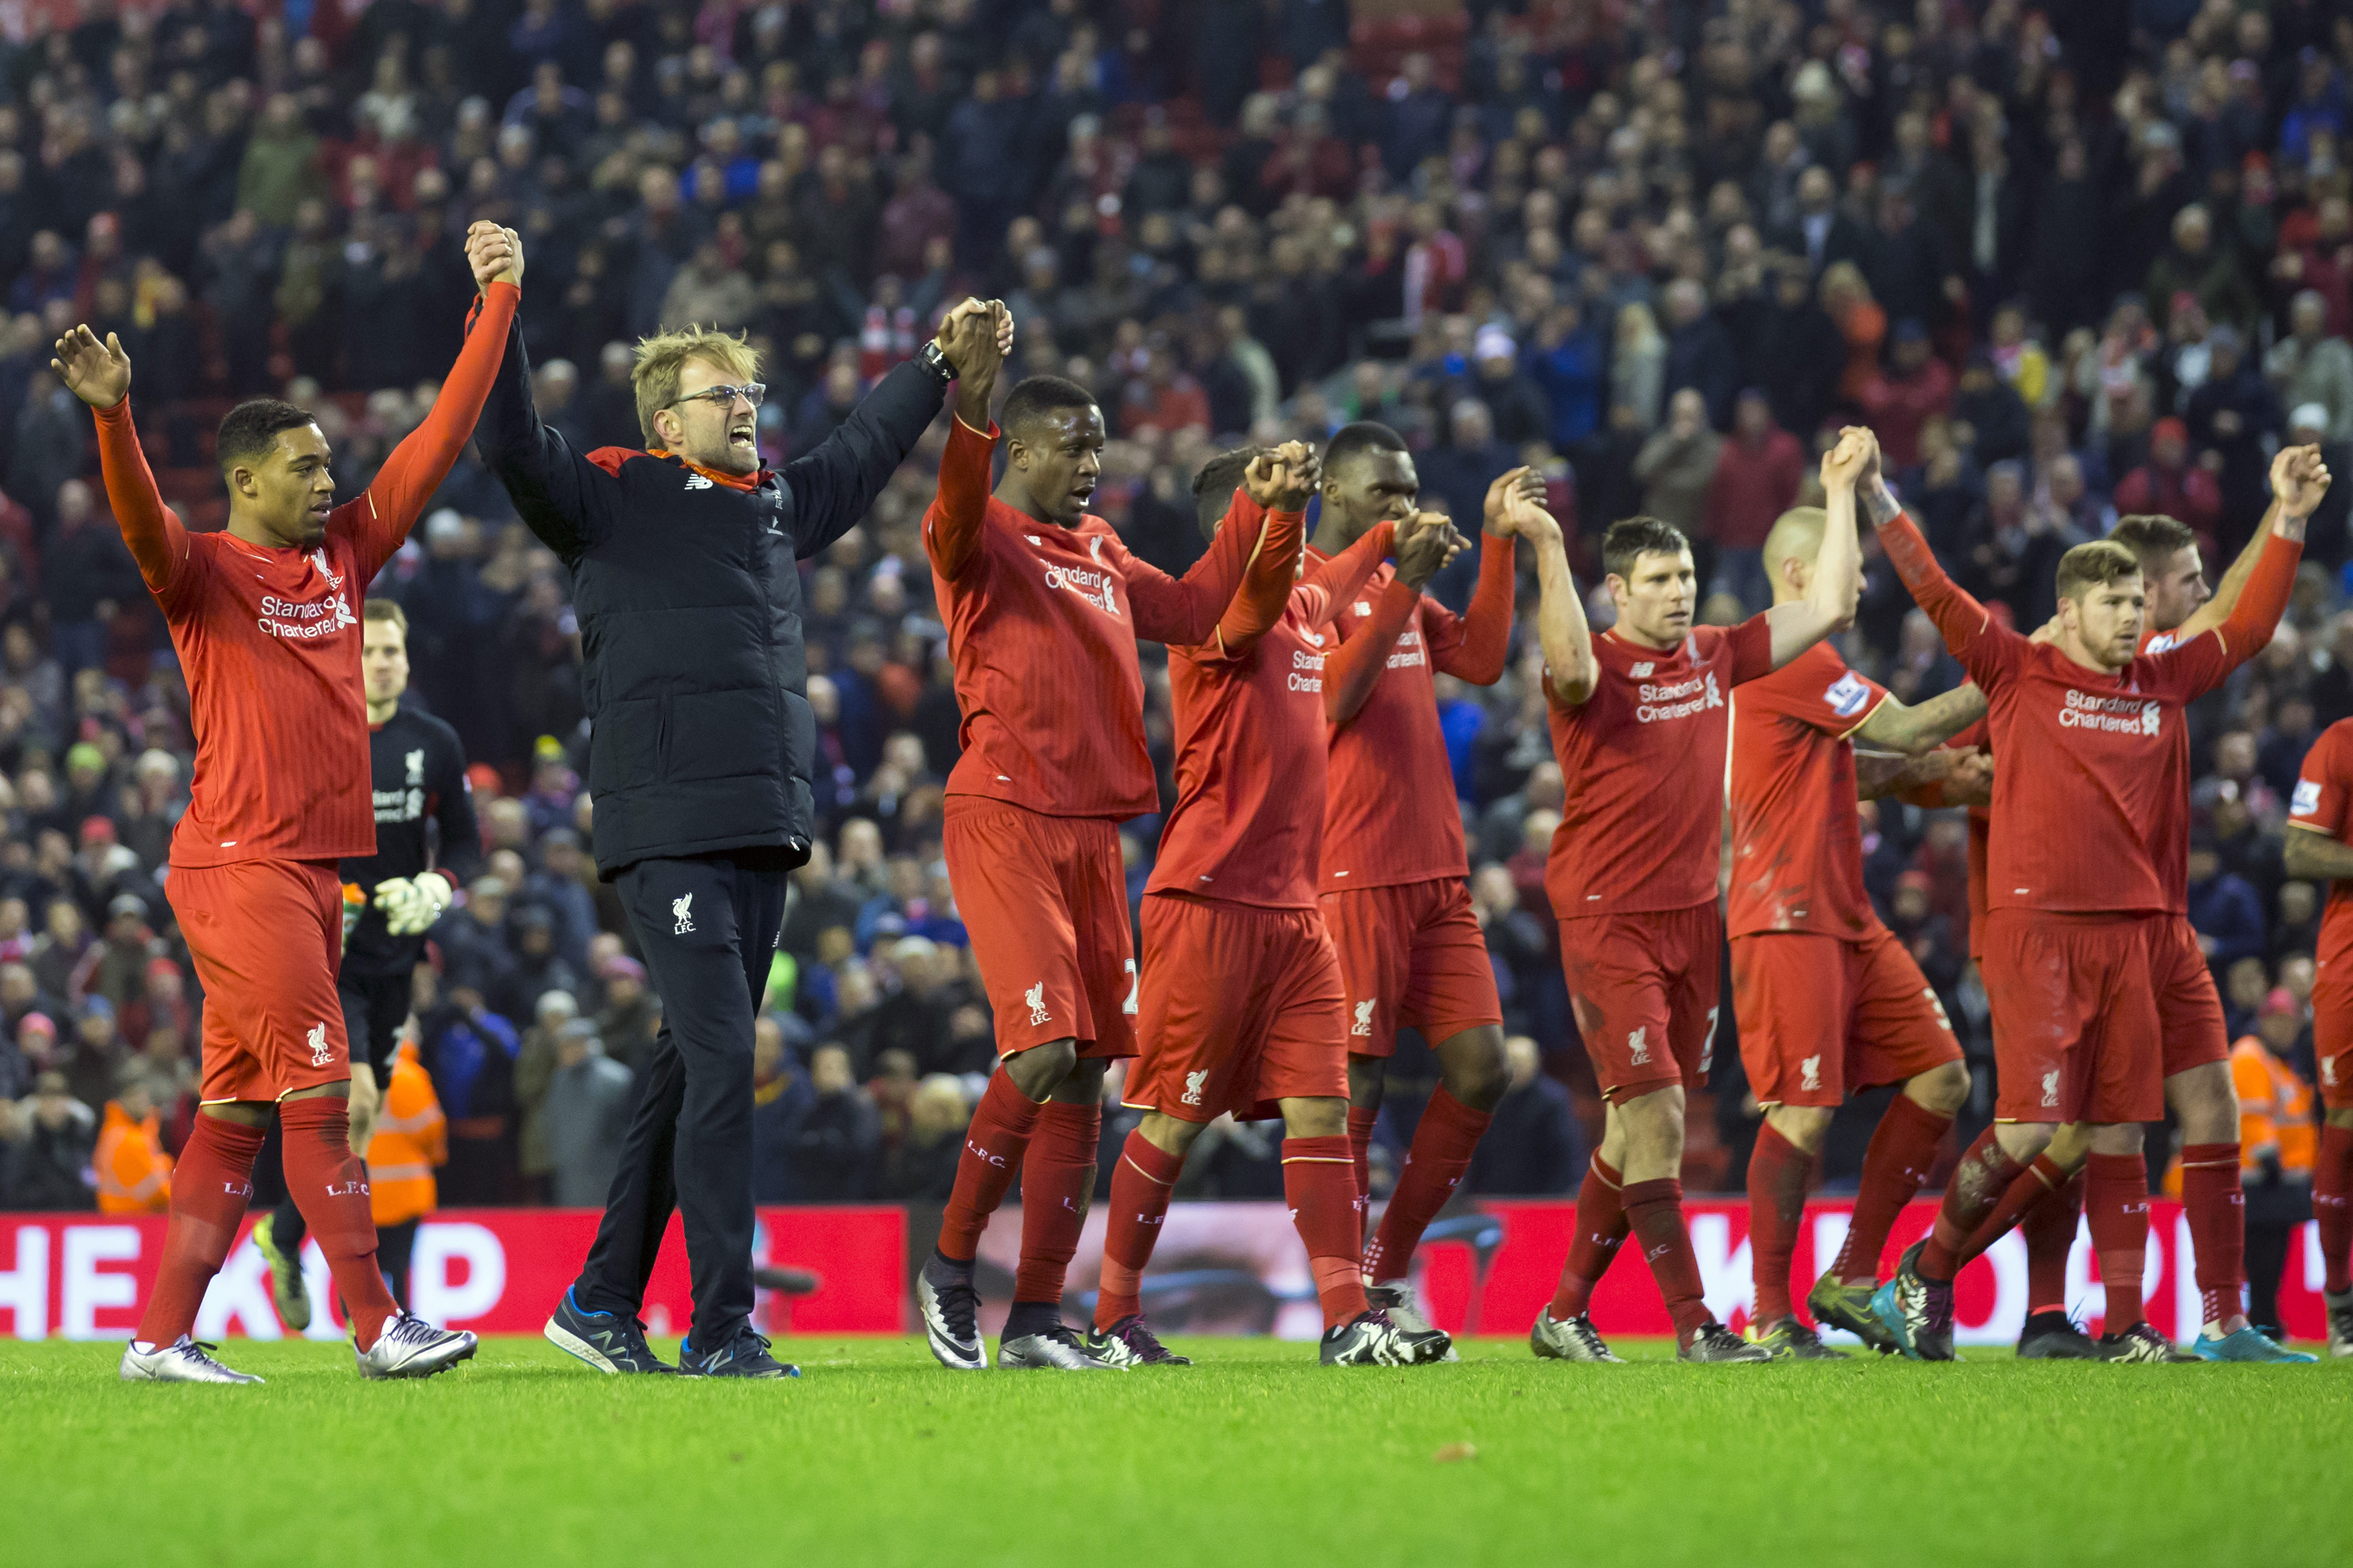 Liverpool's manager Juergen Klopp, second left, celebrates with his players after their 2-2 draw against West Bromwich Albion during the English Premier League soccer match between Liverpool and West Bromwich Albion at Anfield Stadium, Liverpool, England, Sunday, Dec. 13, 2015. Photo: AP